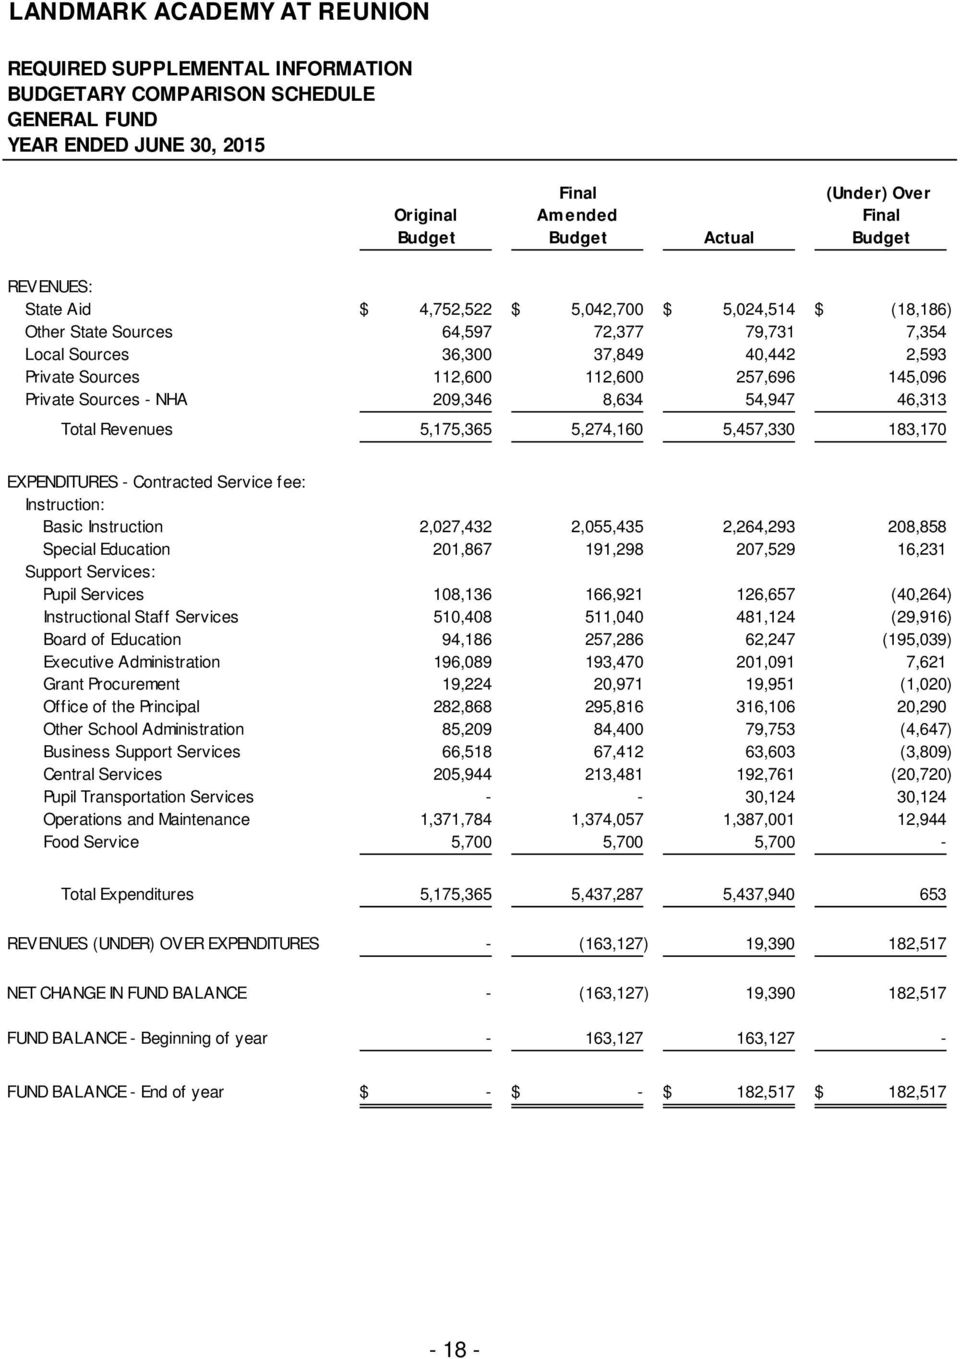 145,096 Private Sources - NHA 209,346 8,634 54,947 46,313 Total Revenues 5,175,365 5,274,160 5,457,330 183,170 EXPENDITURES - Contracted Service fee: Instruction: Basic Instruction 2,027,432